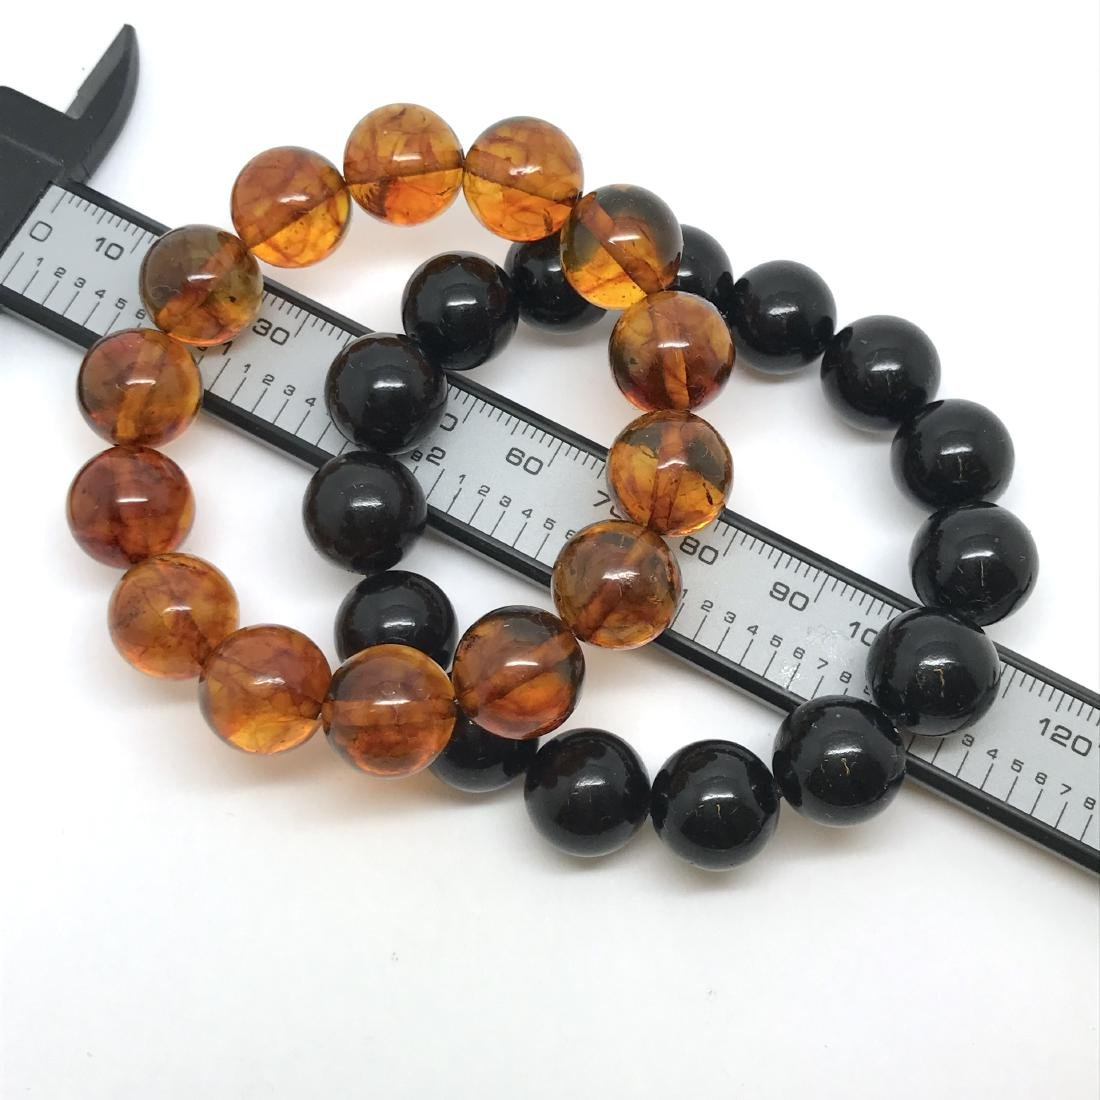 2x bracelets Baltic amber beads ø12.5mm, weight 29.5 gr - 4